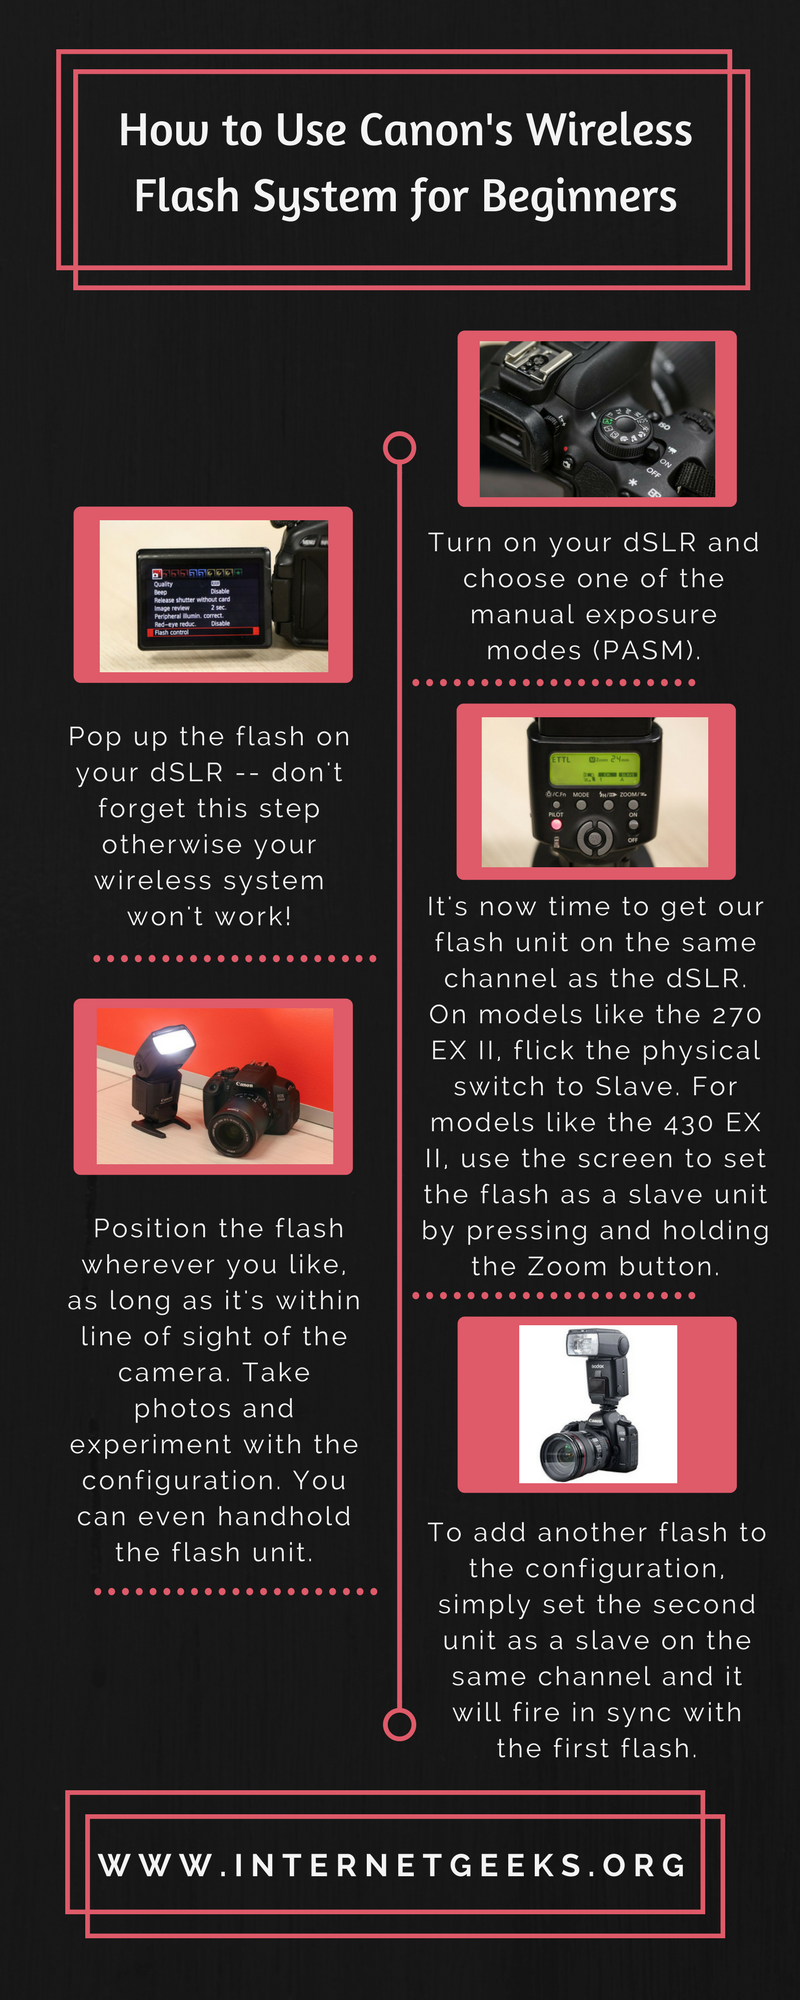 Steps For Using Canon S Wireless Flash System Http Www Internetgeeks Org Tech Gadgets Best External High Resolution Camera Canon Camera Improve Photography